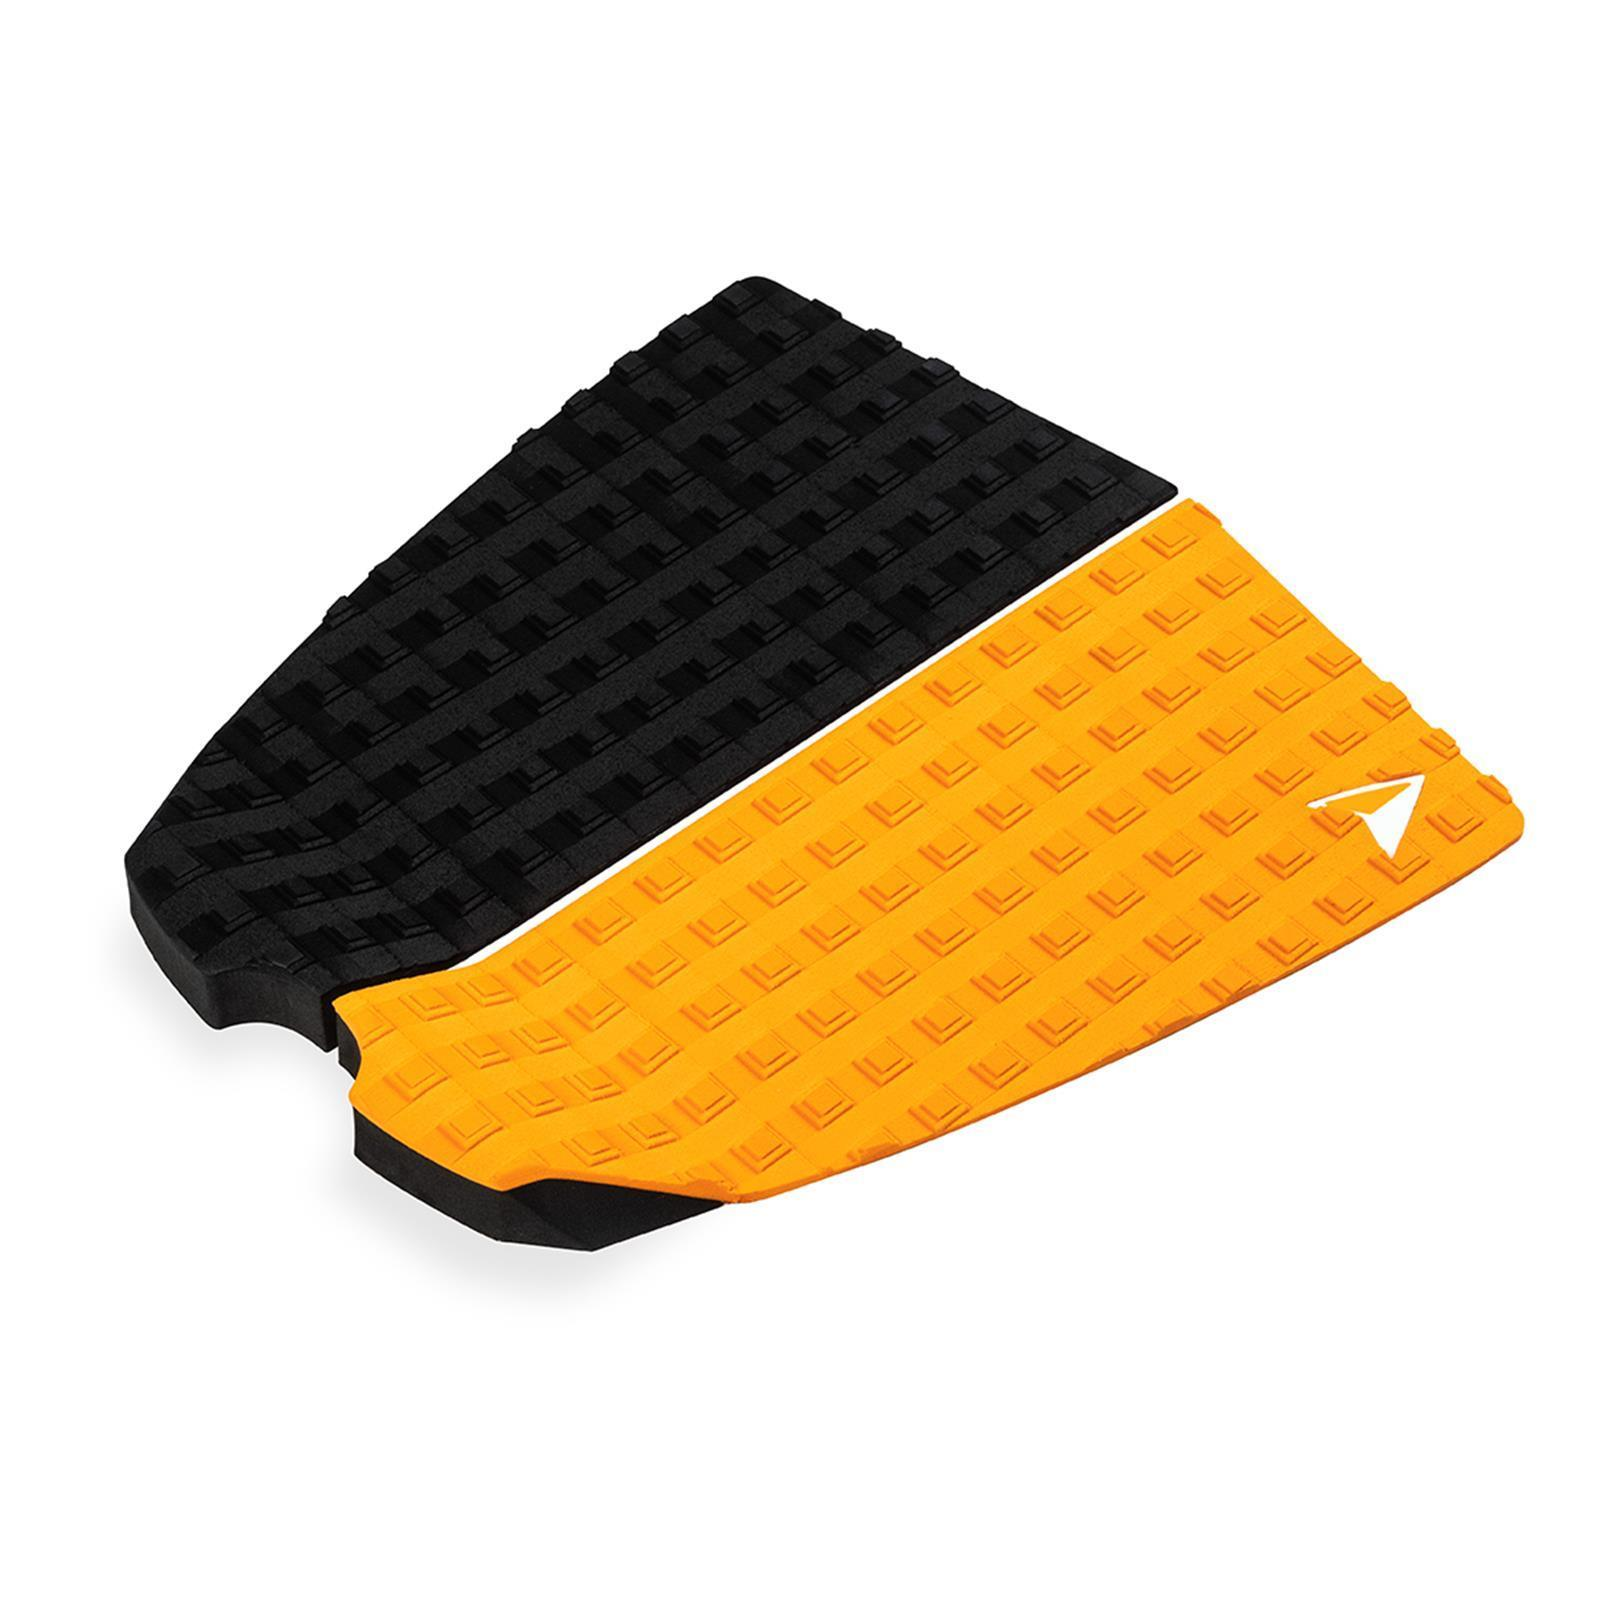 ROAM Footpad Deck Grip Traction Pad 2-tlg Orange